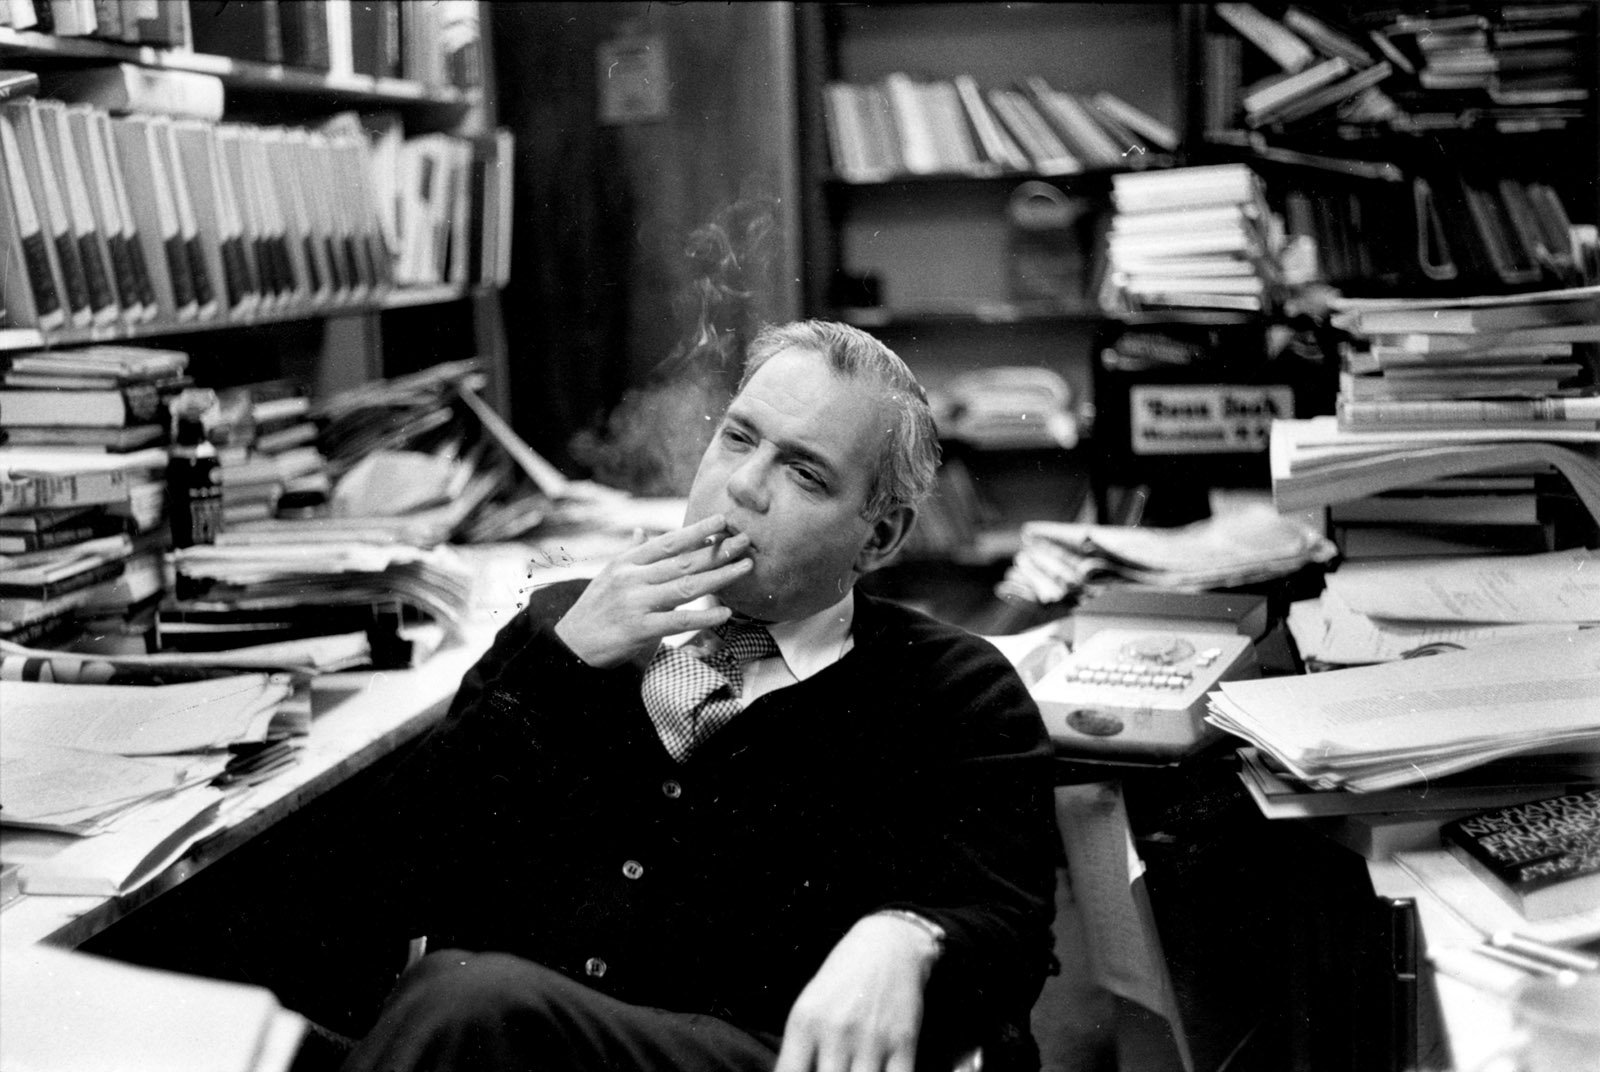 Robert B. Silvers in his office at The New York Review of Books, early 1980s